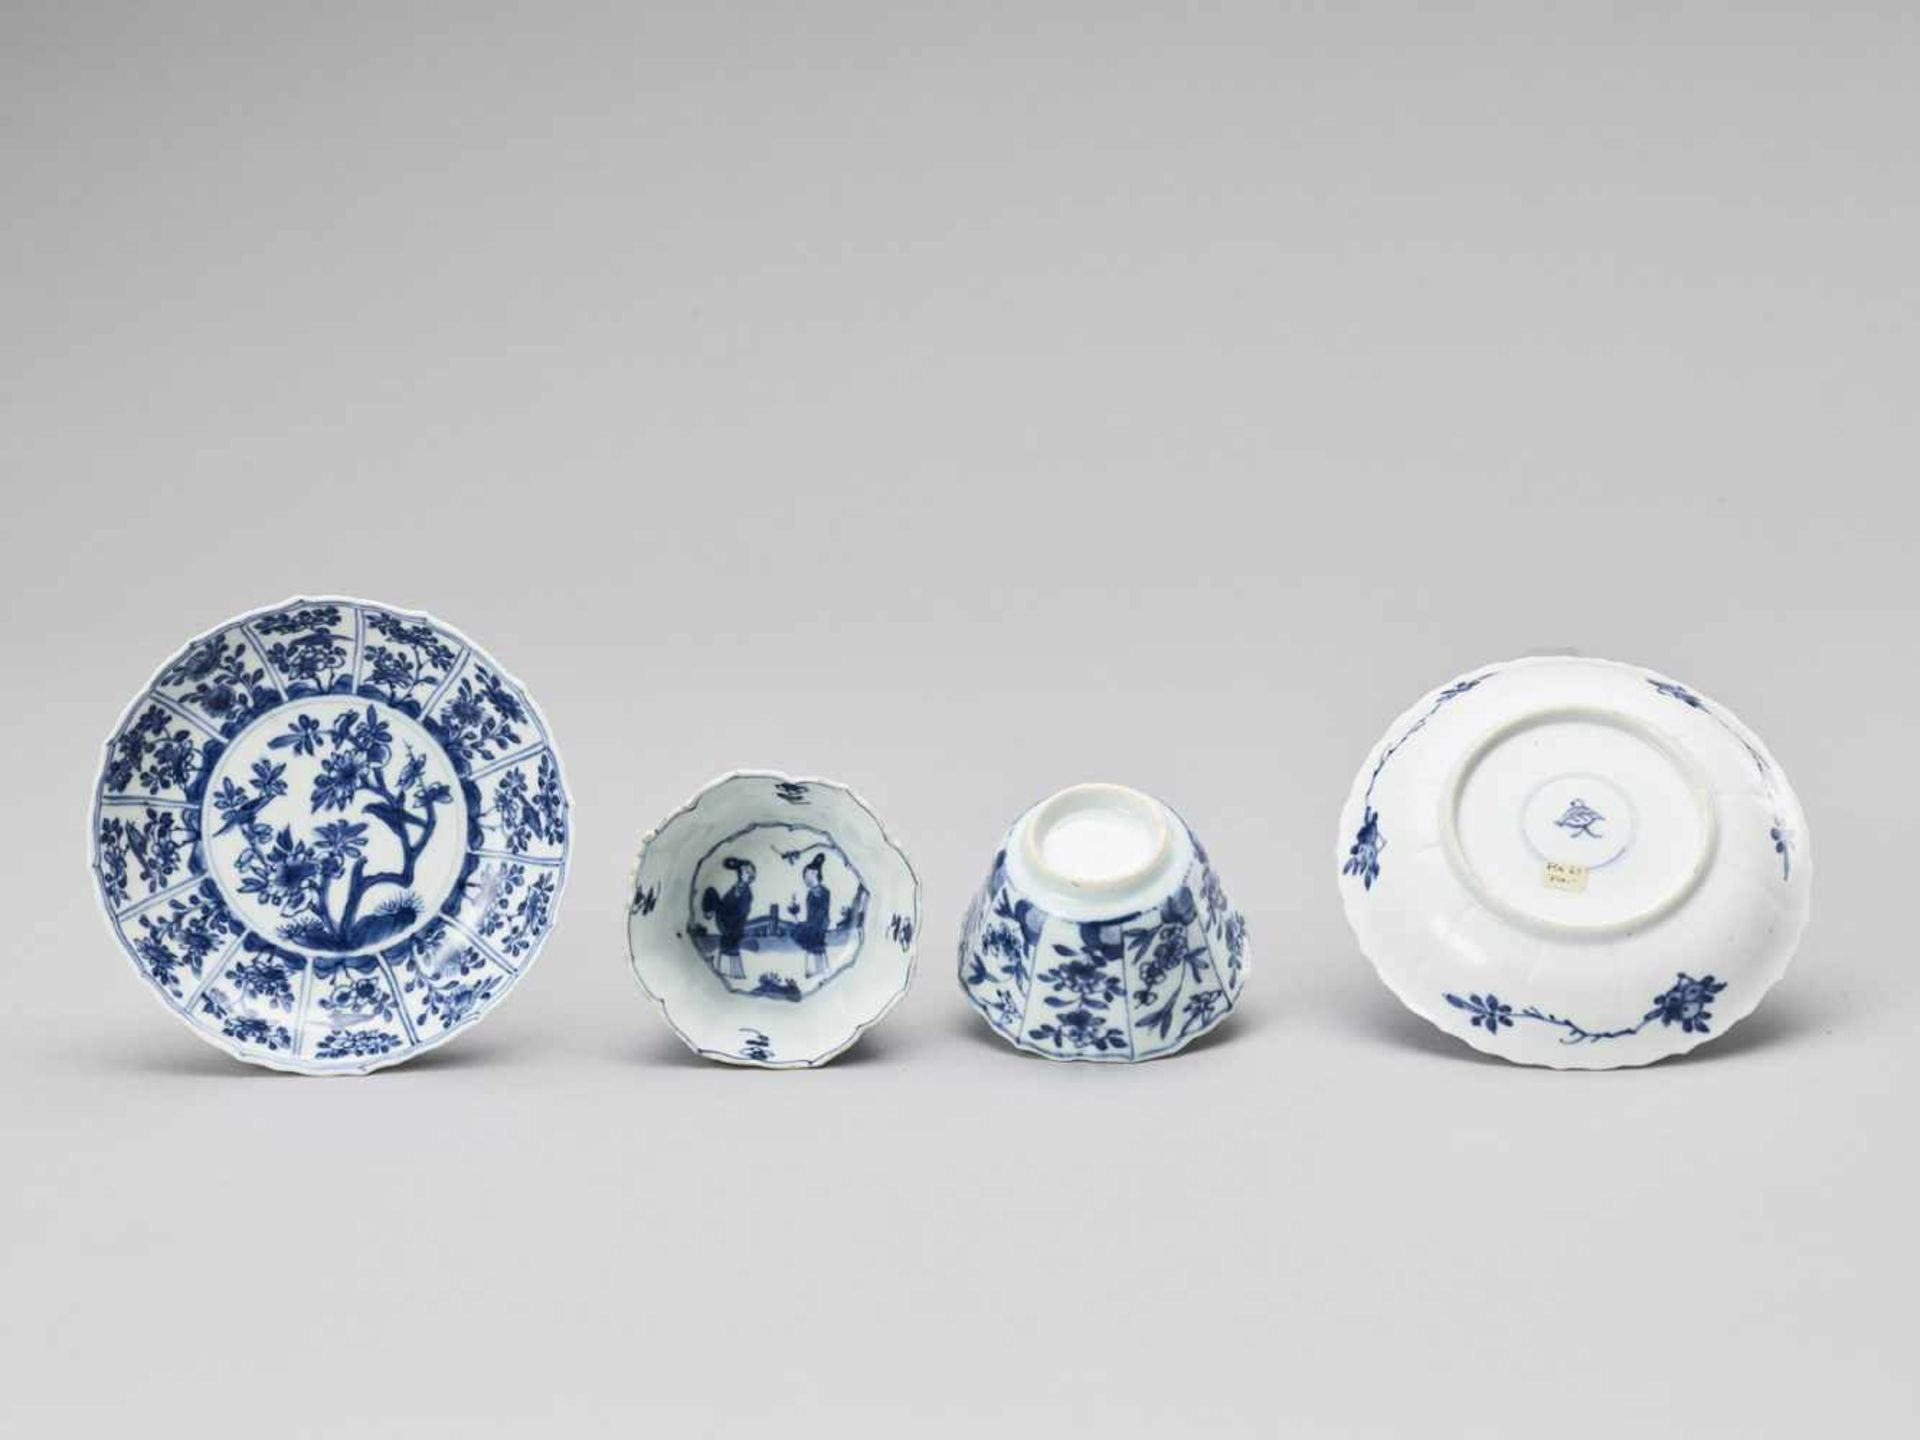 Los 422 - FIVE PAIRS OF BLUE AND WHITE CUPS WITH MATCHING PLATES